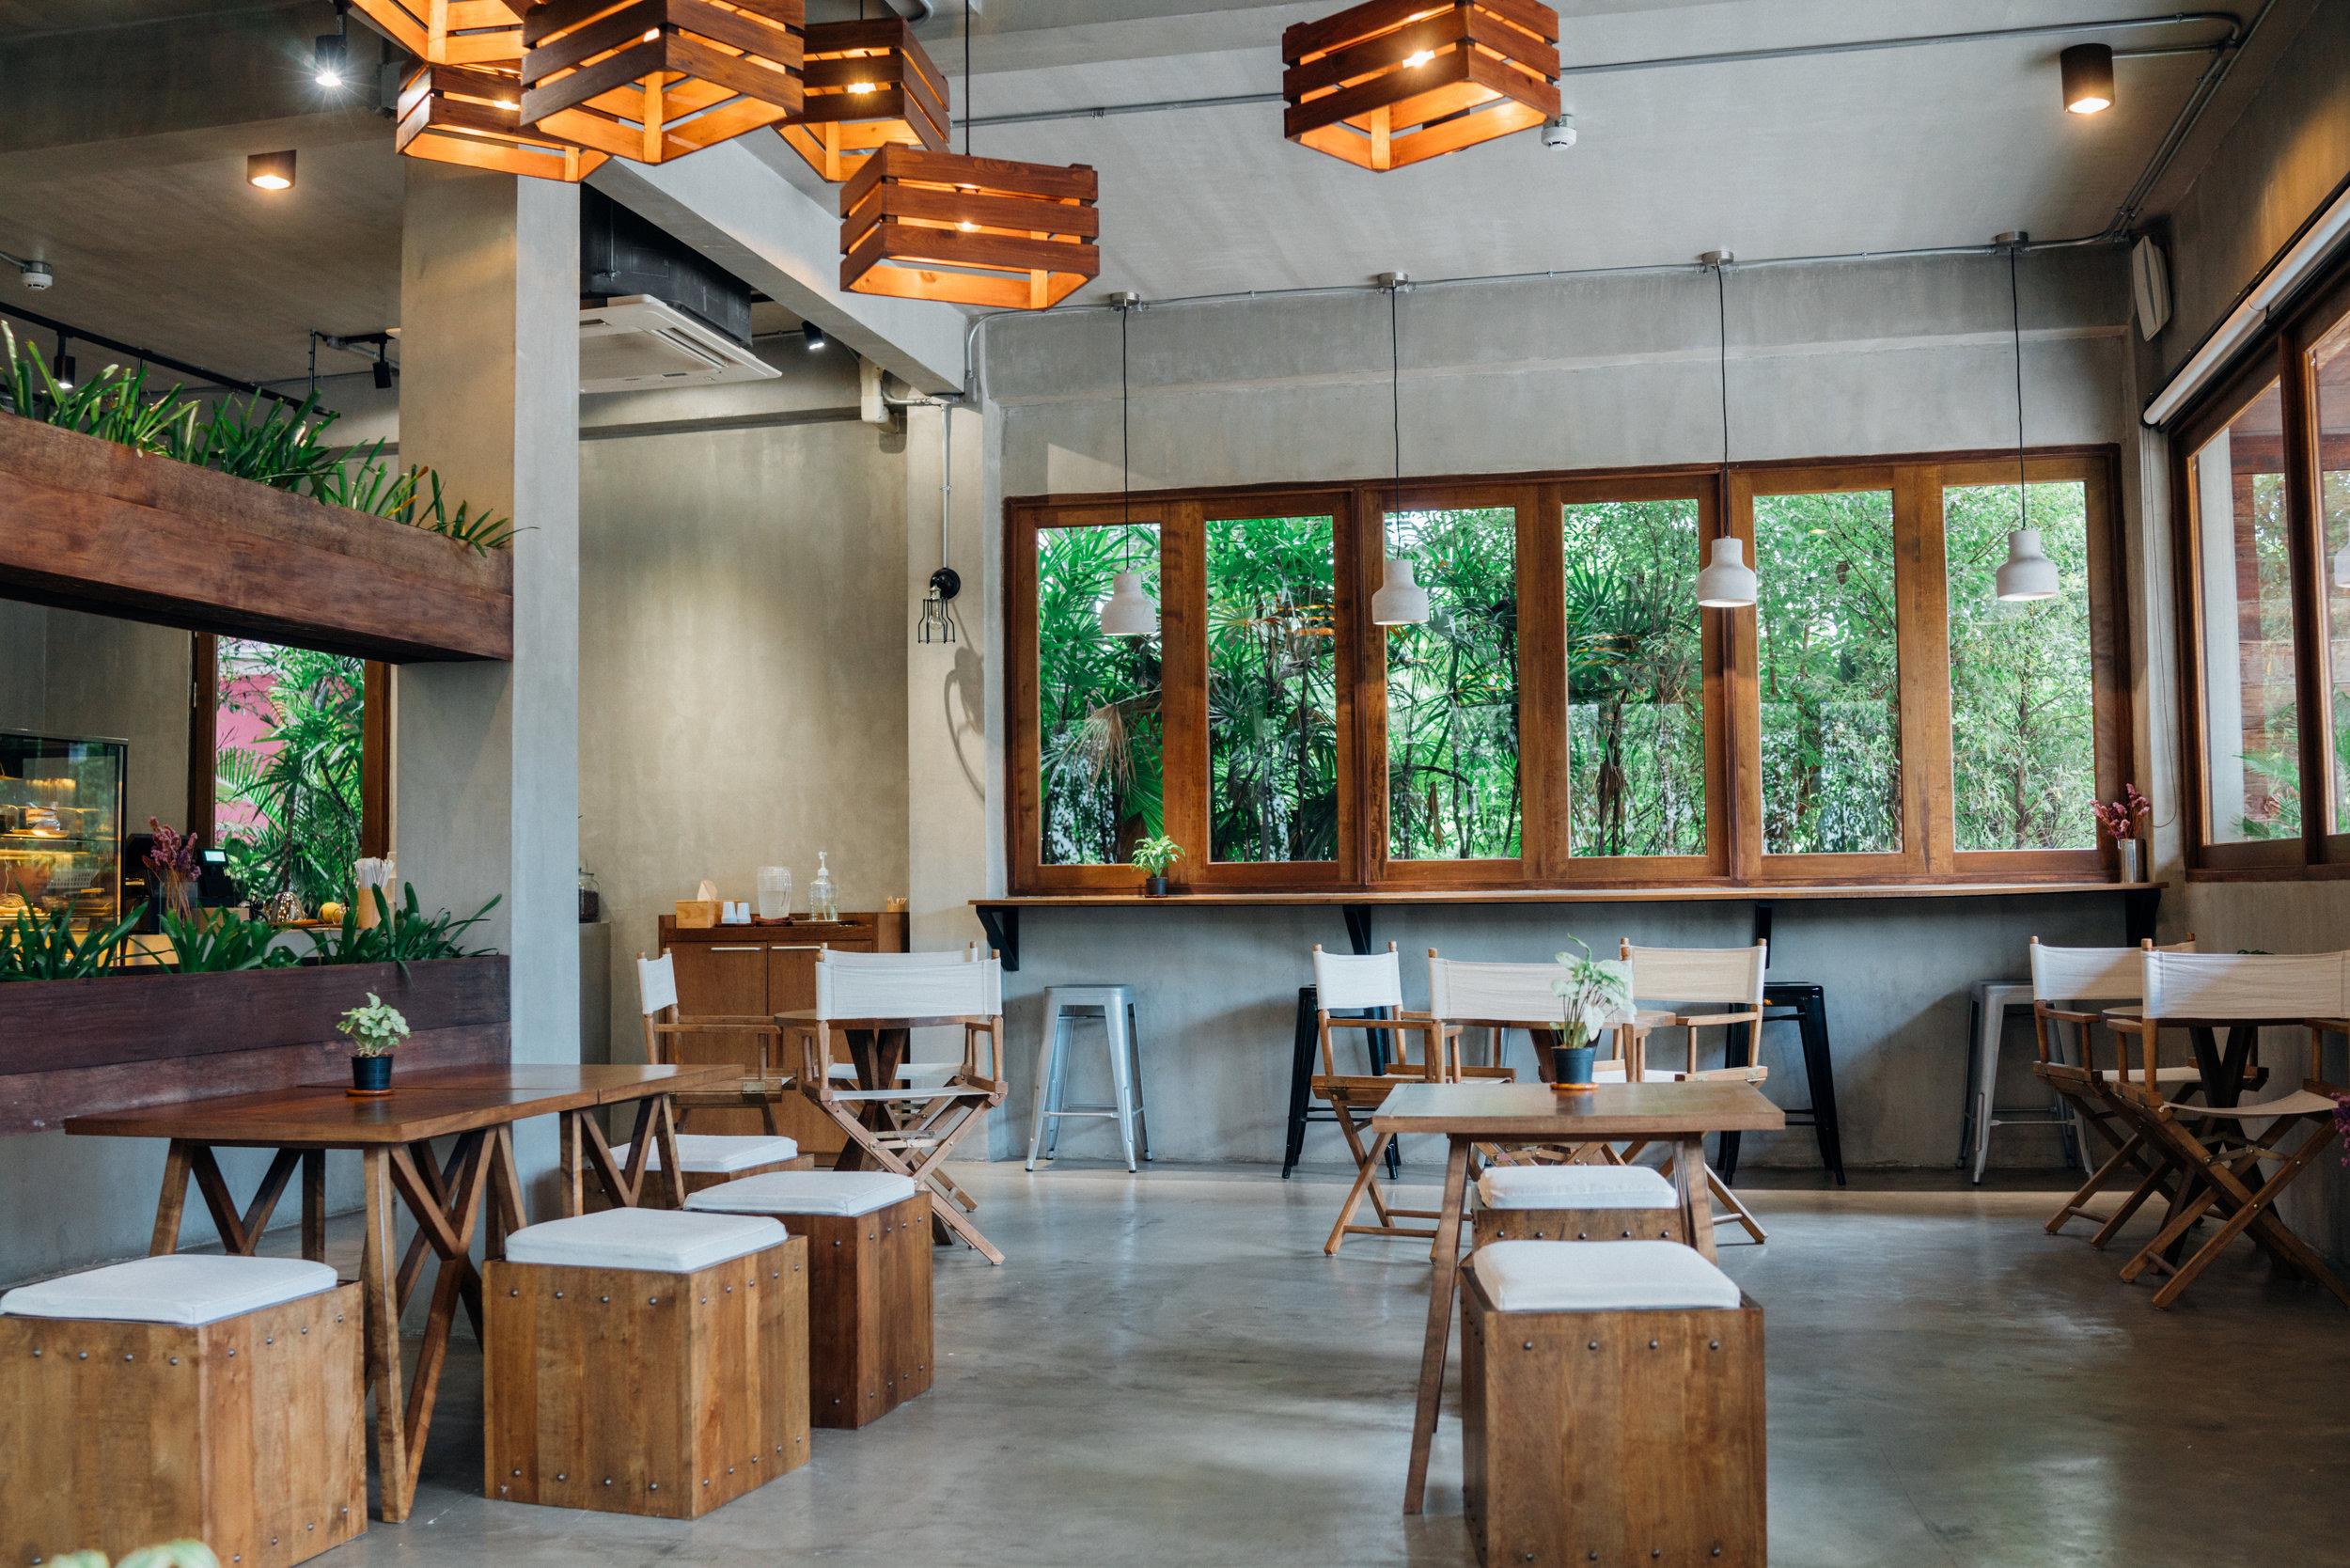 The beautiful and calming space at Slow Cafe